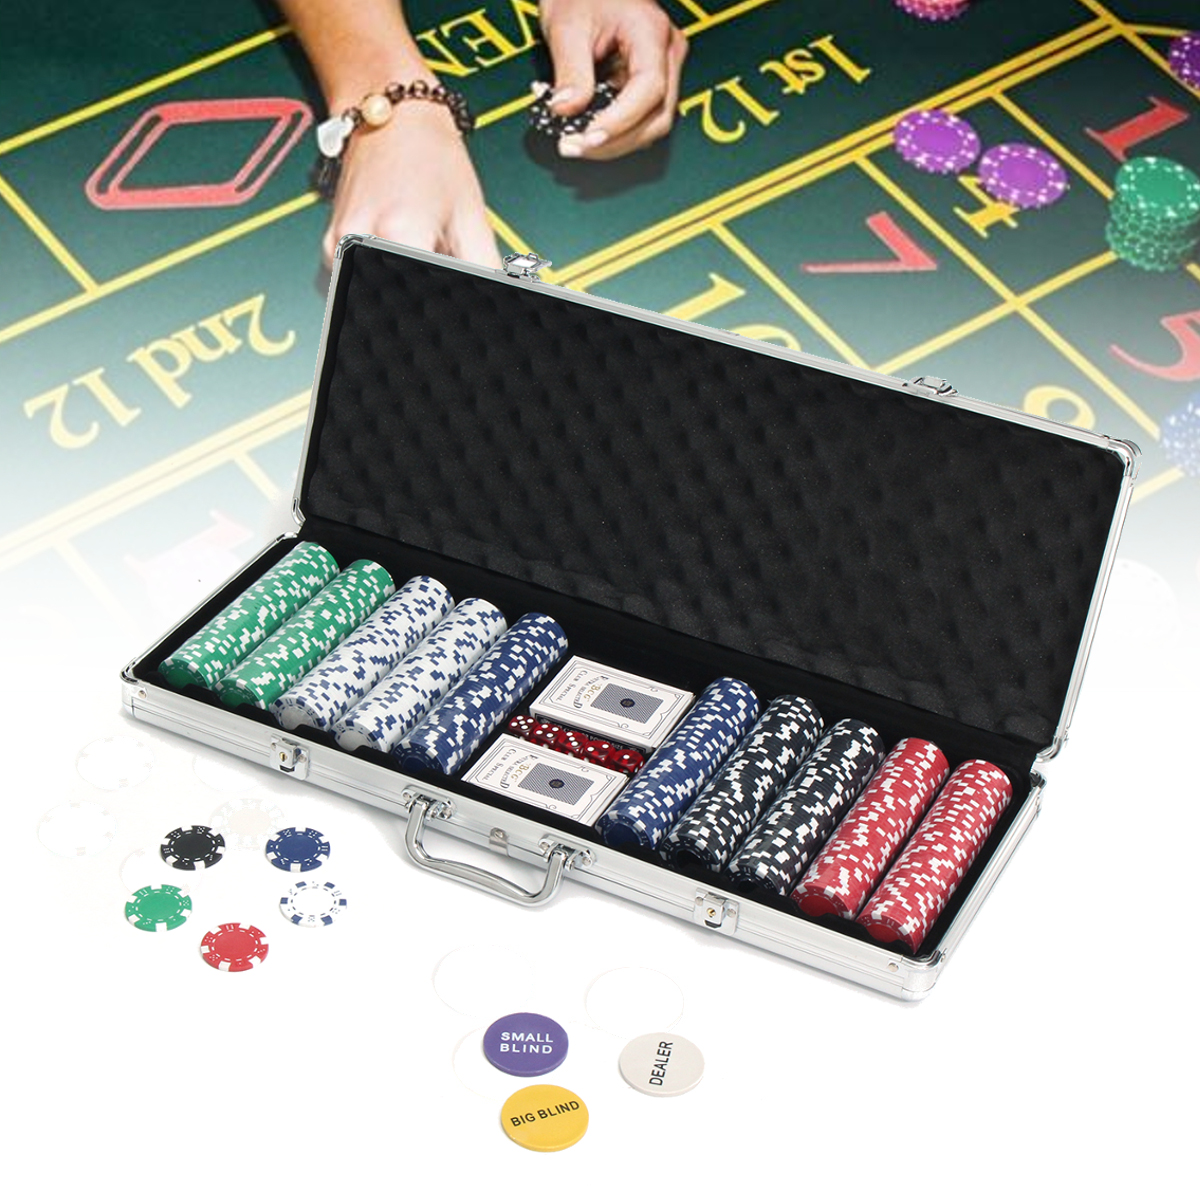 500 Chips Poker Dice Chip Set Game Play Texas Hold'em Cards With Aluminium Case by